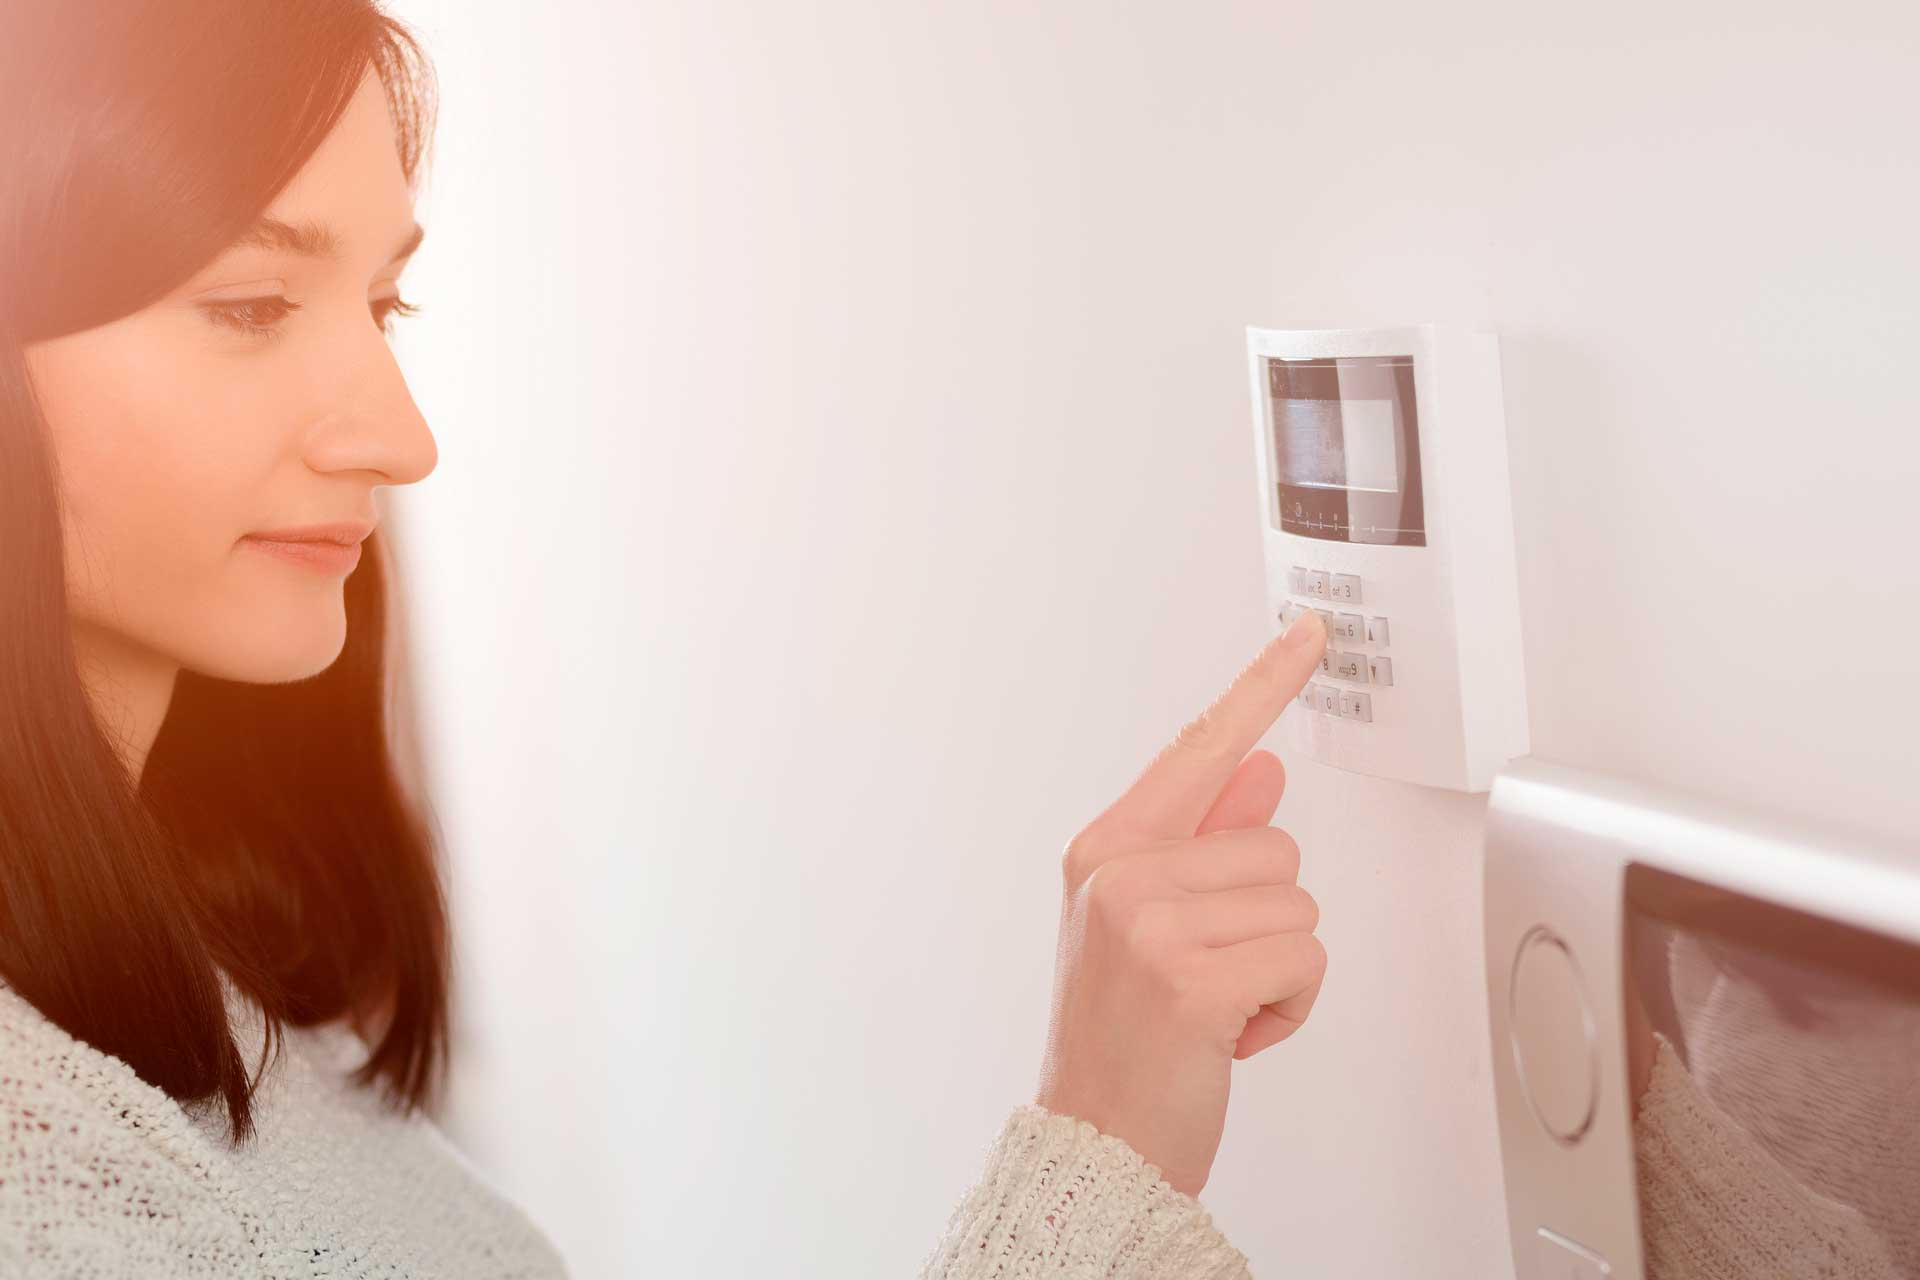 Woman using a keypad for a security system